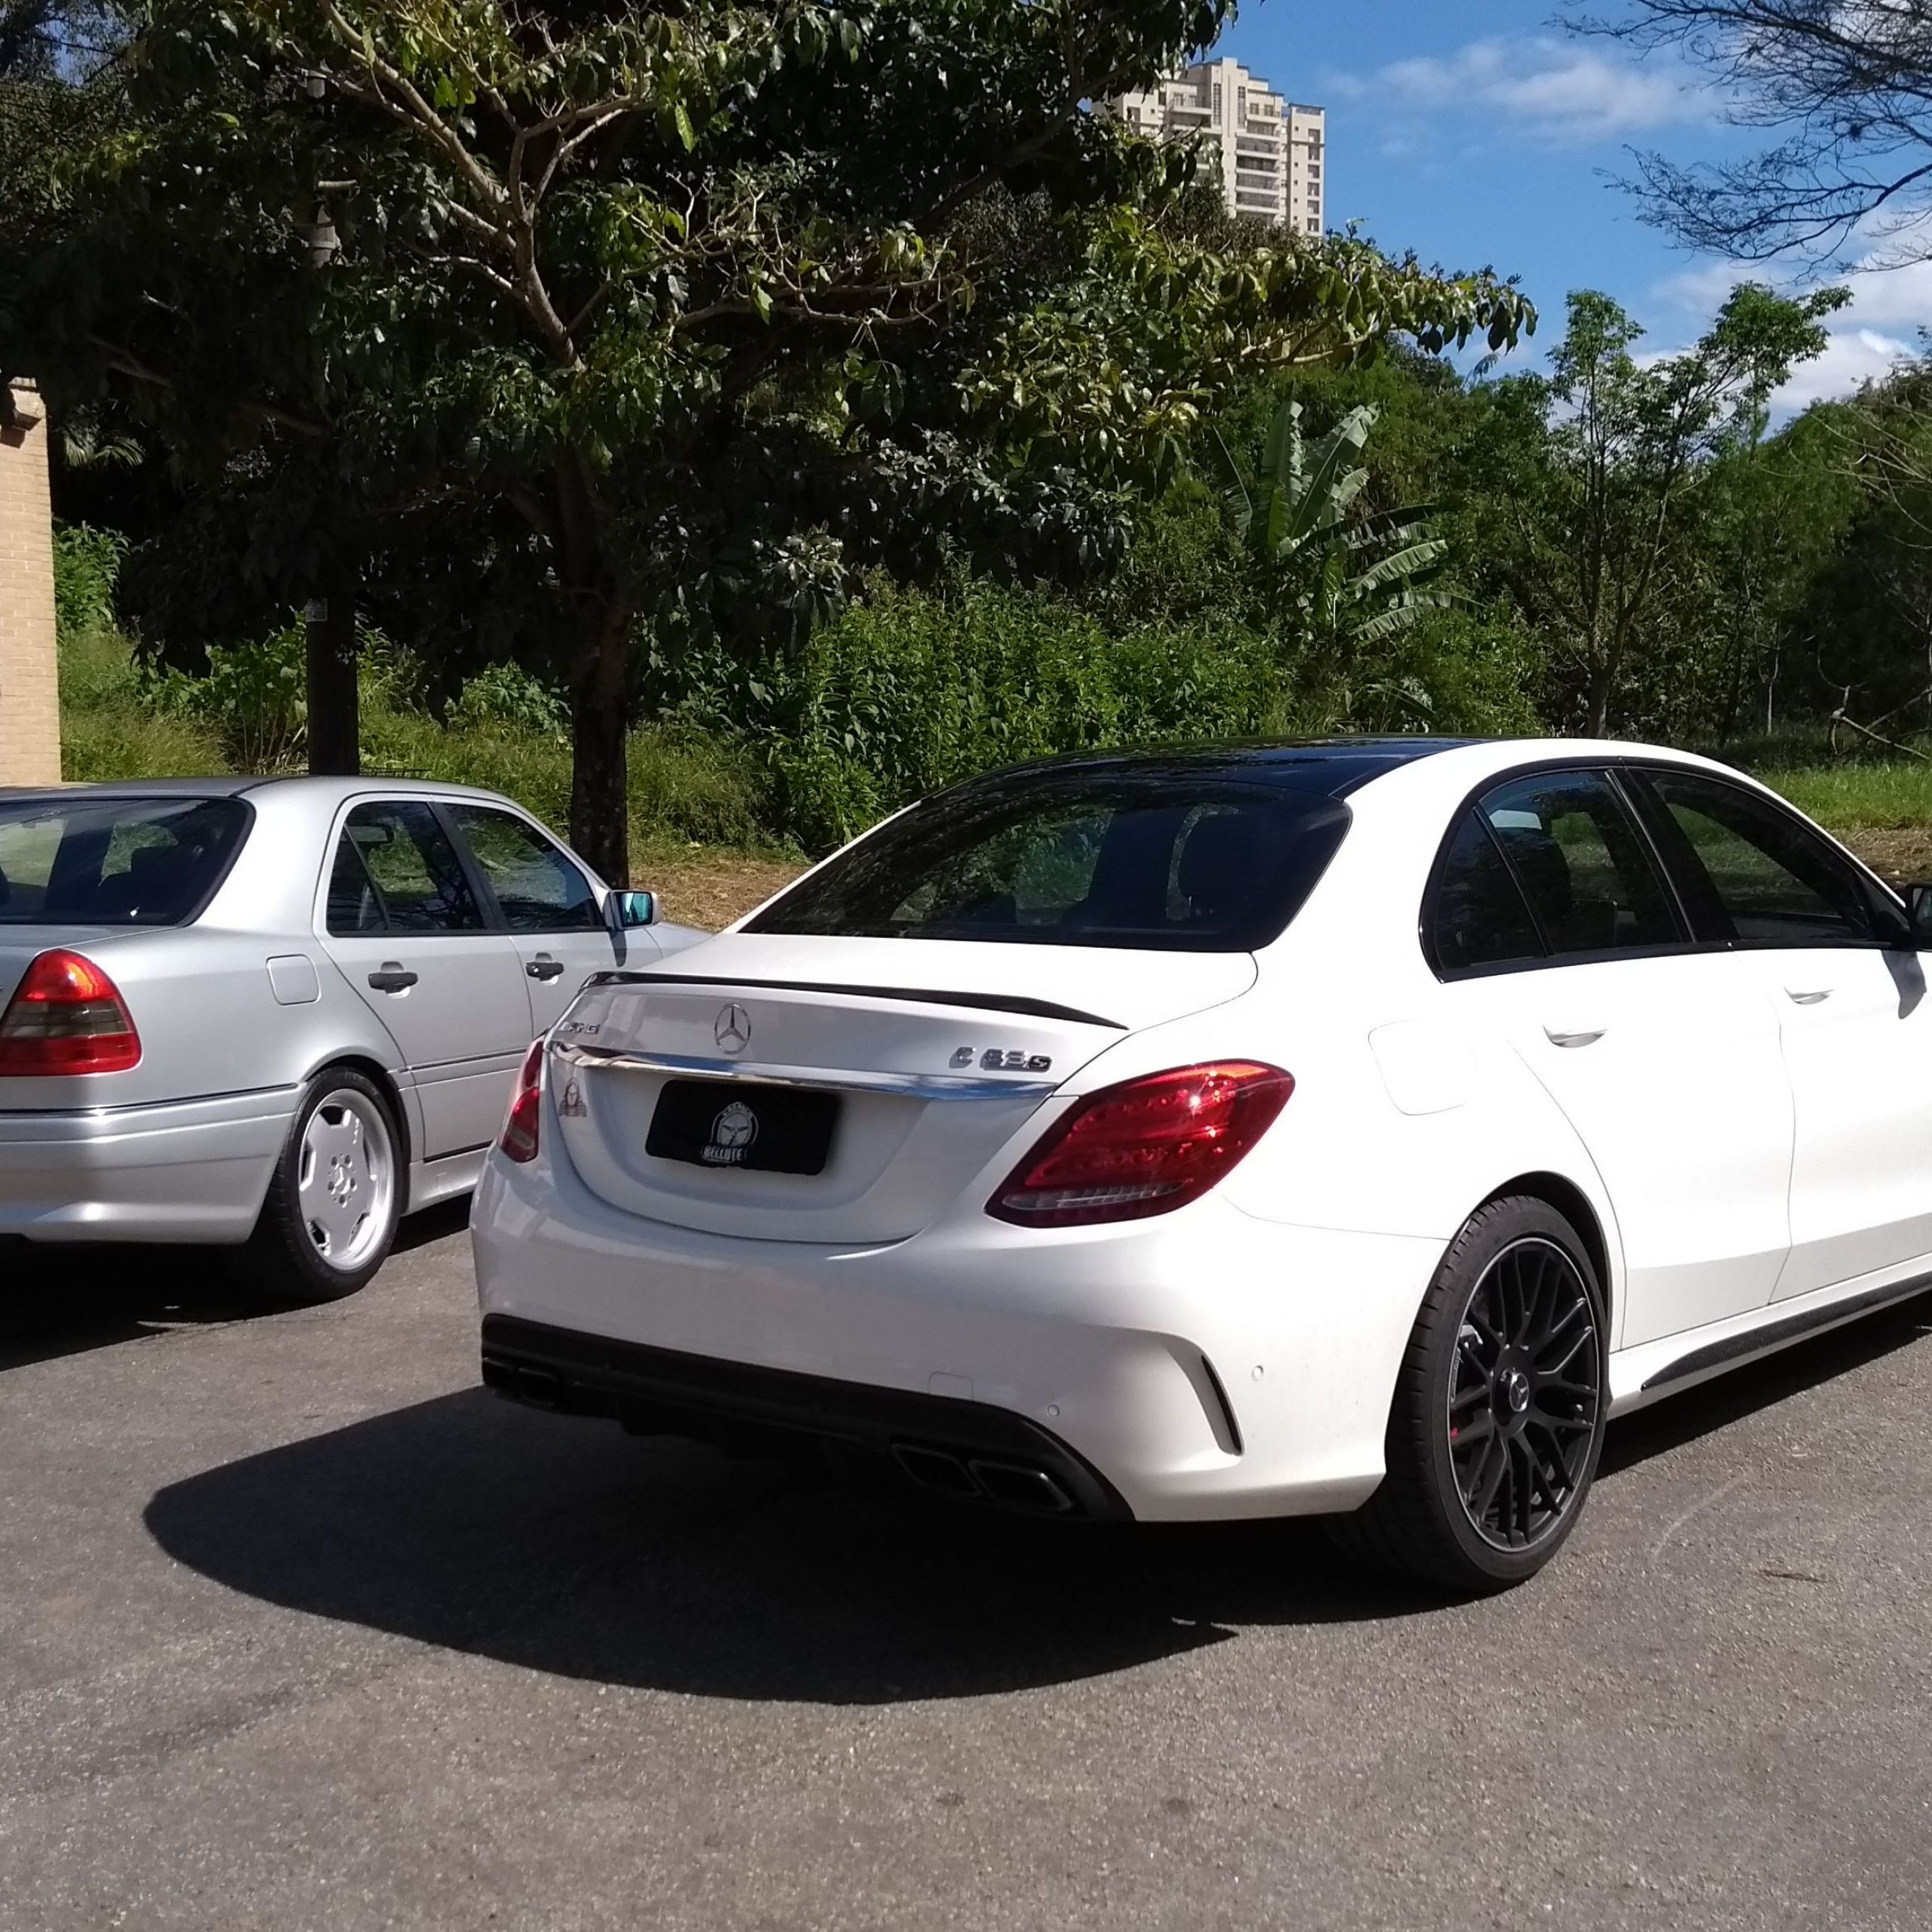 S550 for Sale Lovely Mercedes Benz C36 Amg E Mercedes Amg C63 S